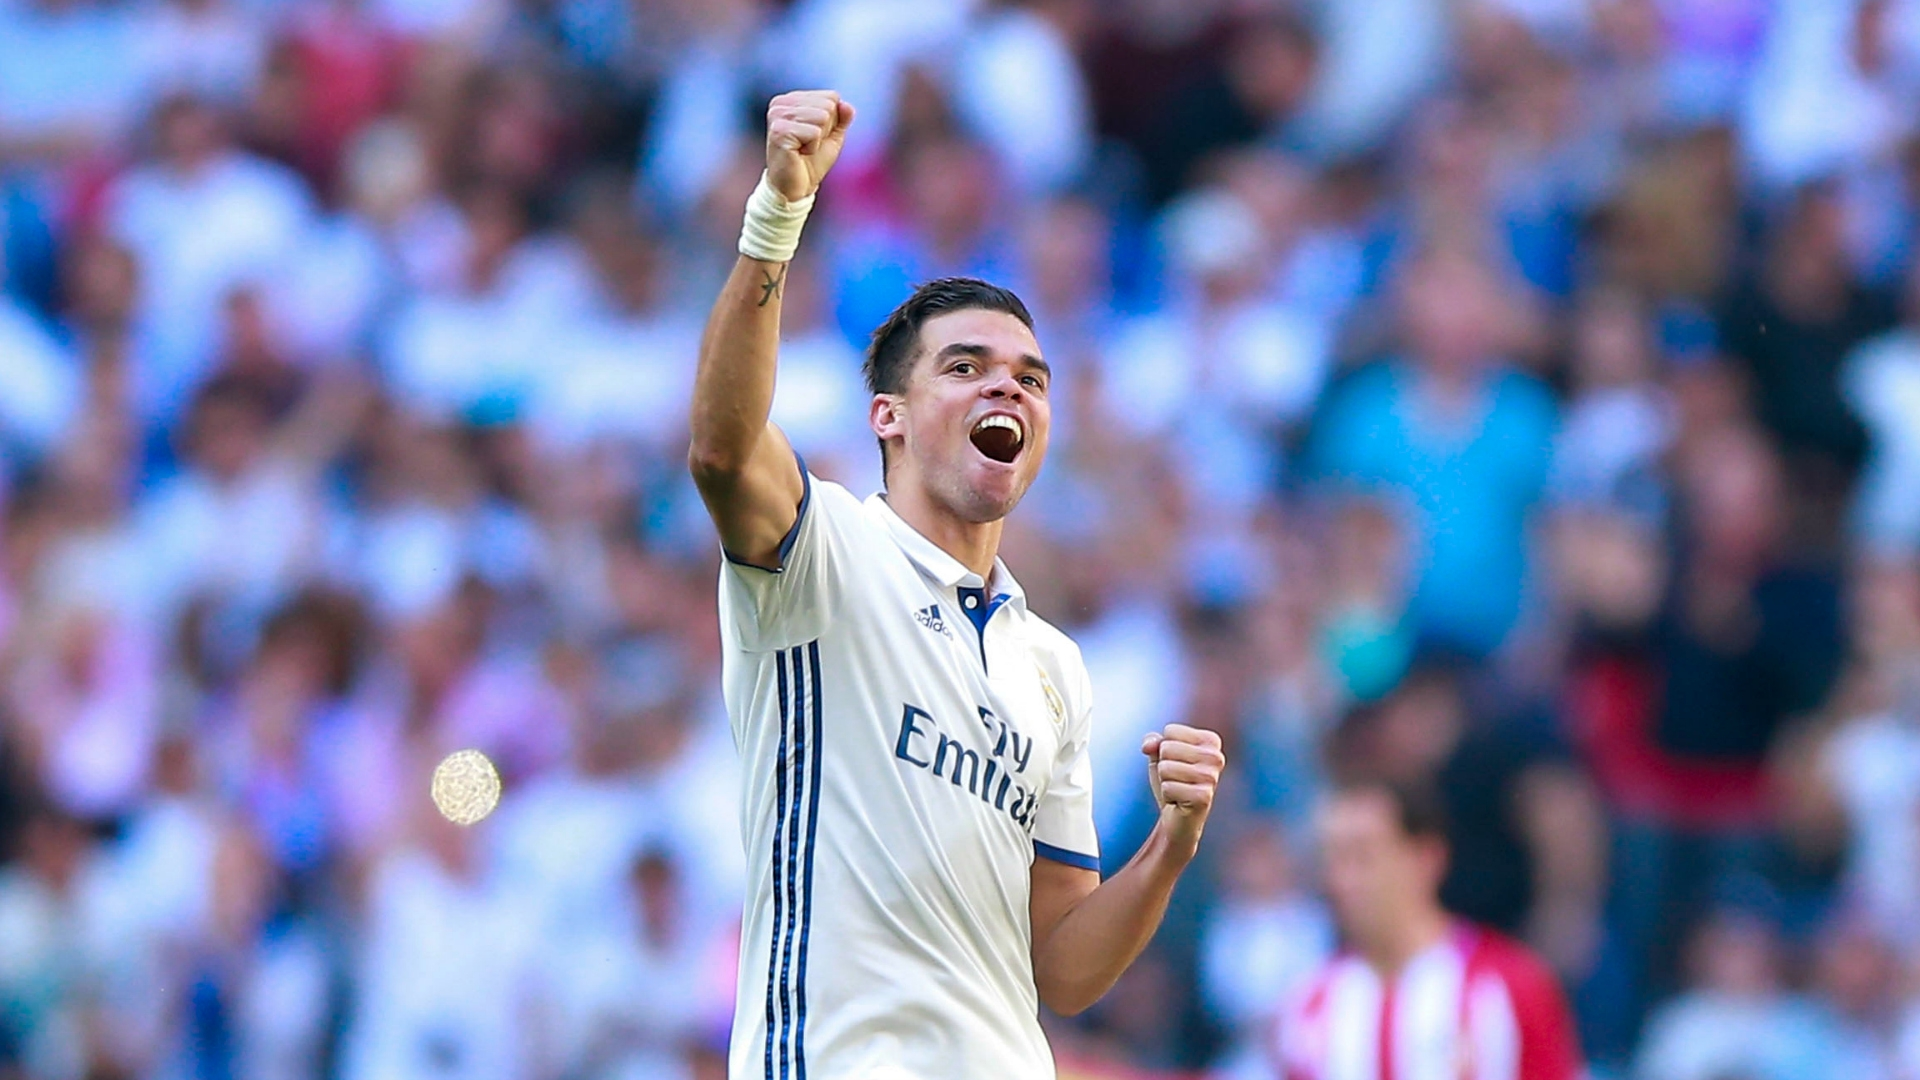 Pepe has already issued his goodbyes to Real fans and a transfer move was expected.